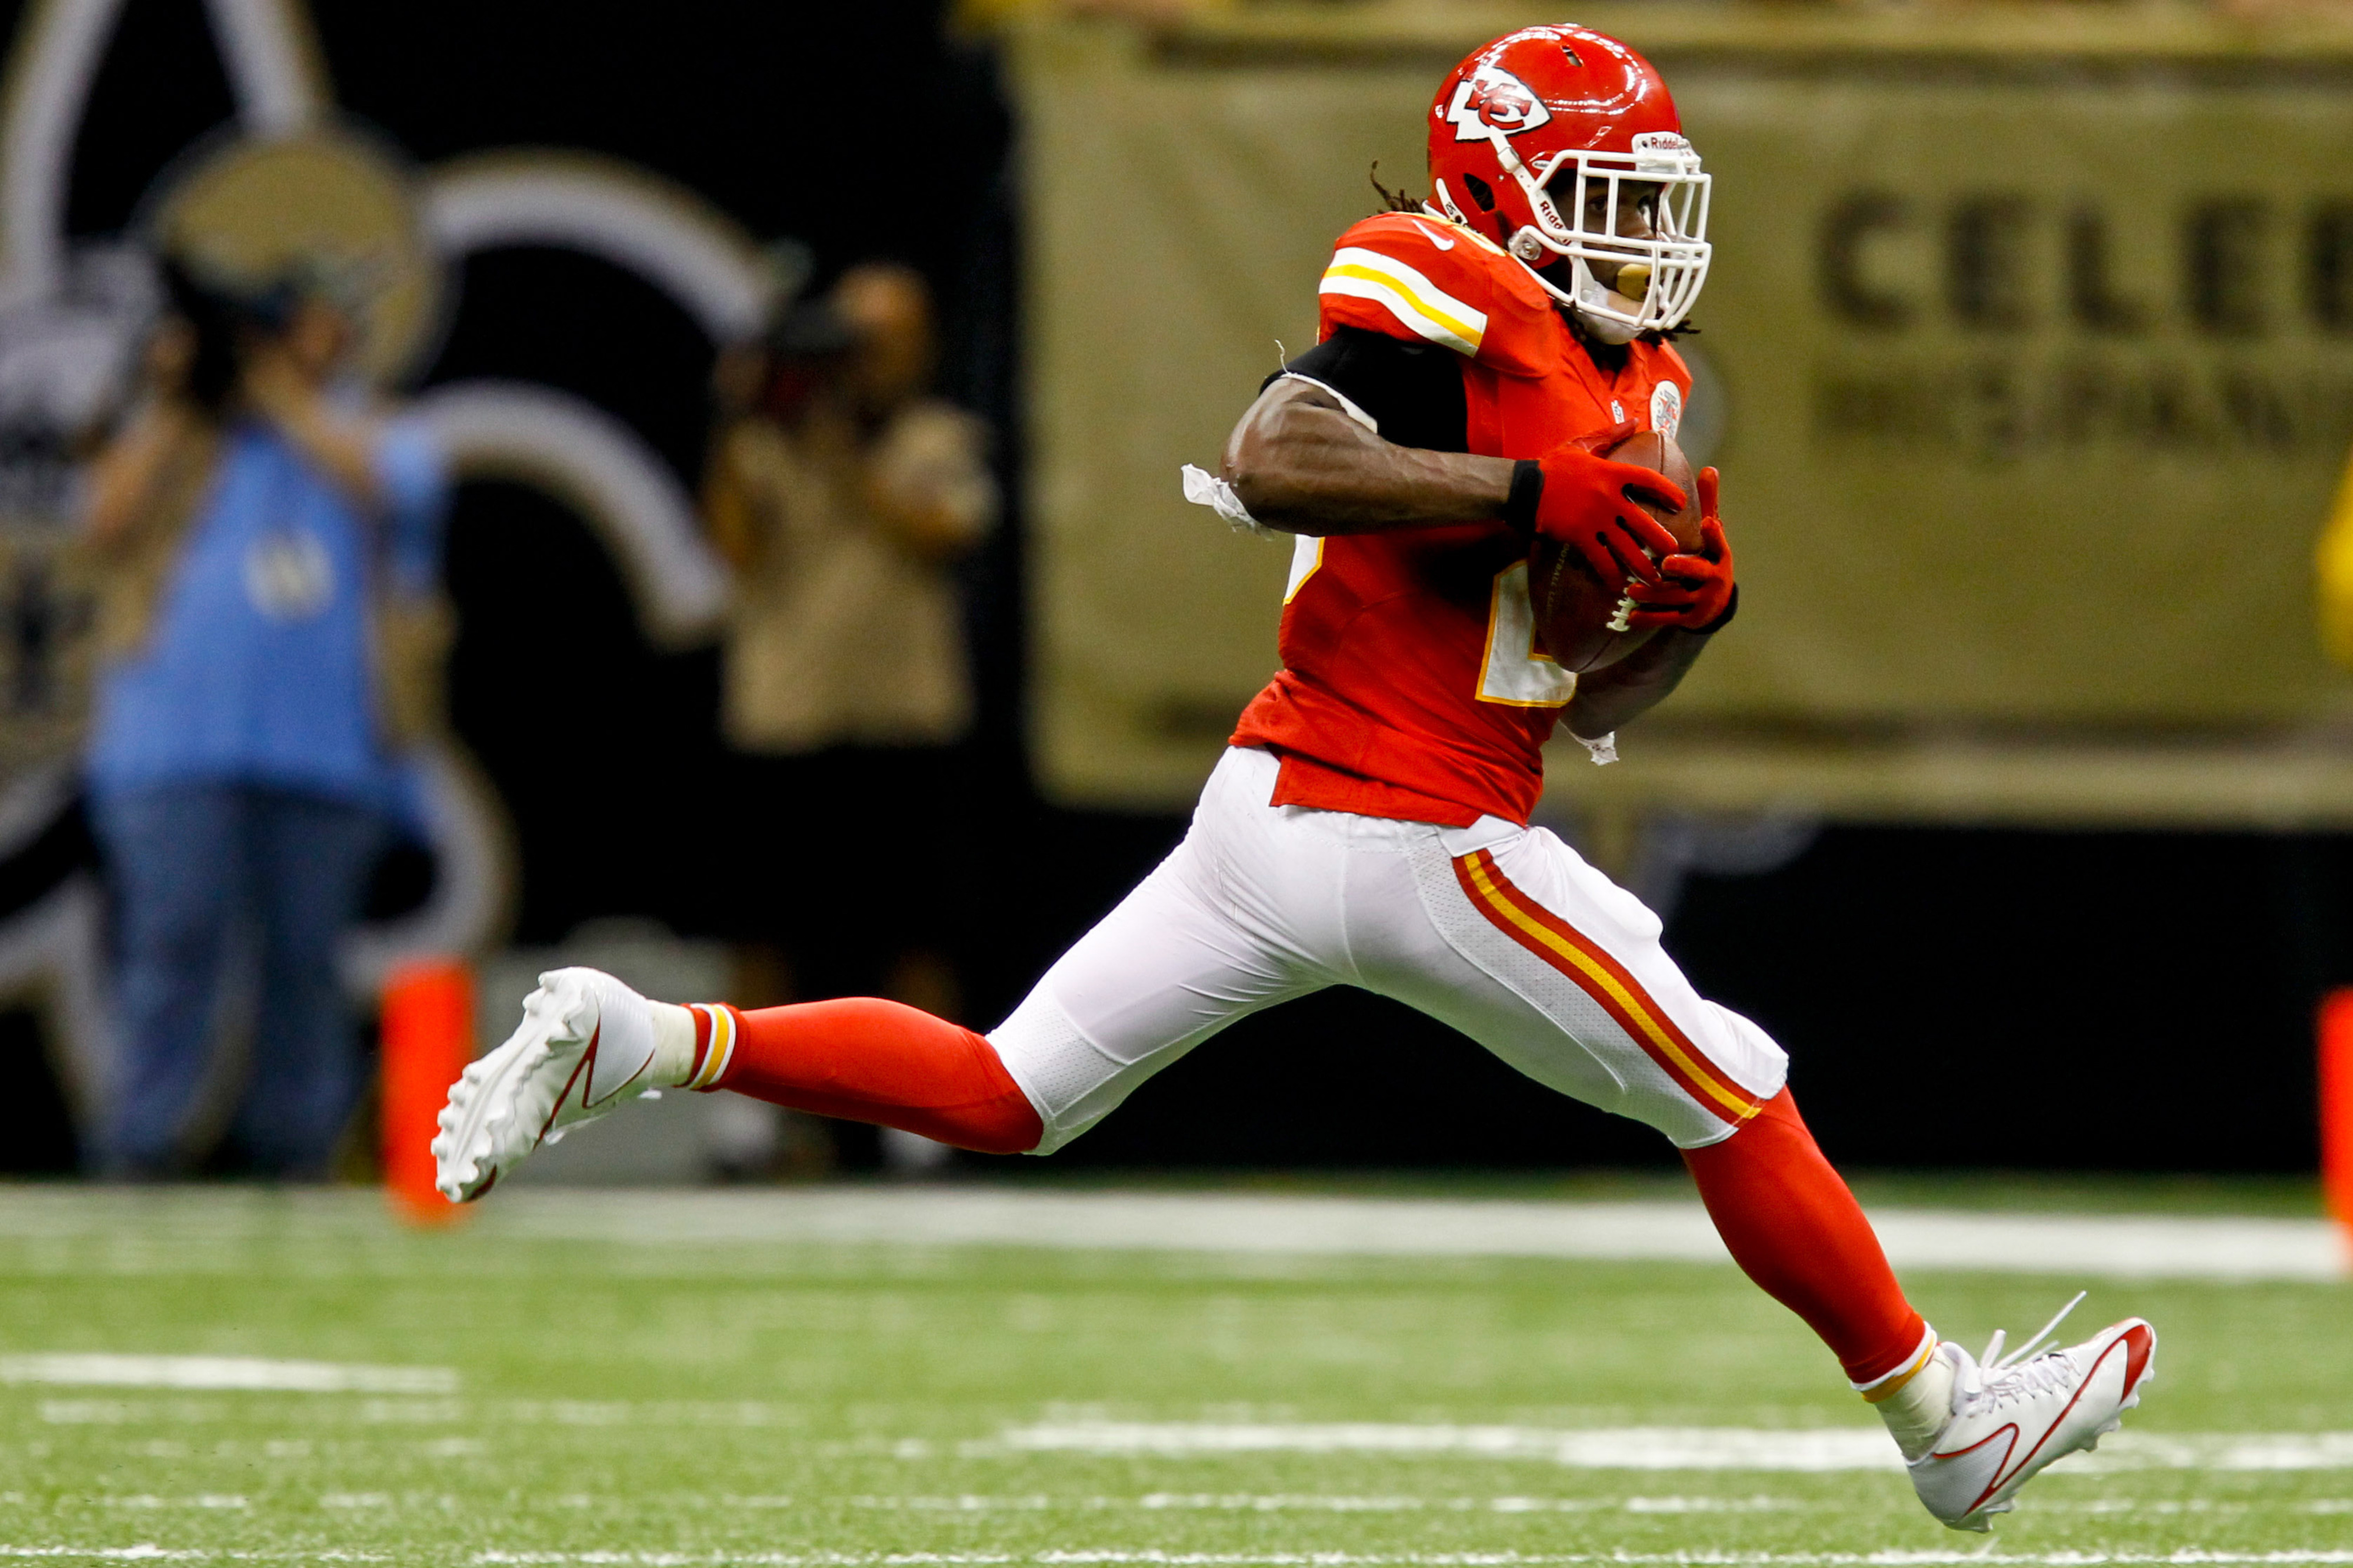 Fantasy football rankings 2014: Your Top 200 prior to NFL free agency